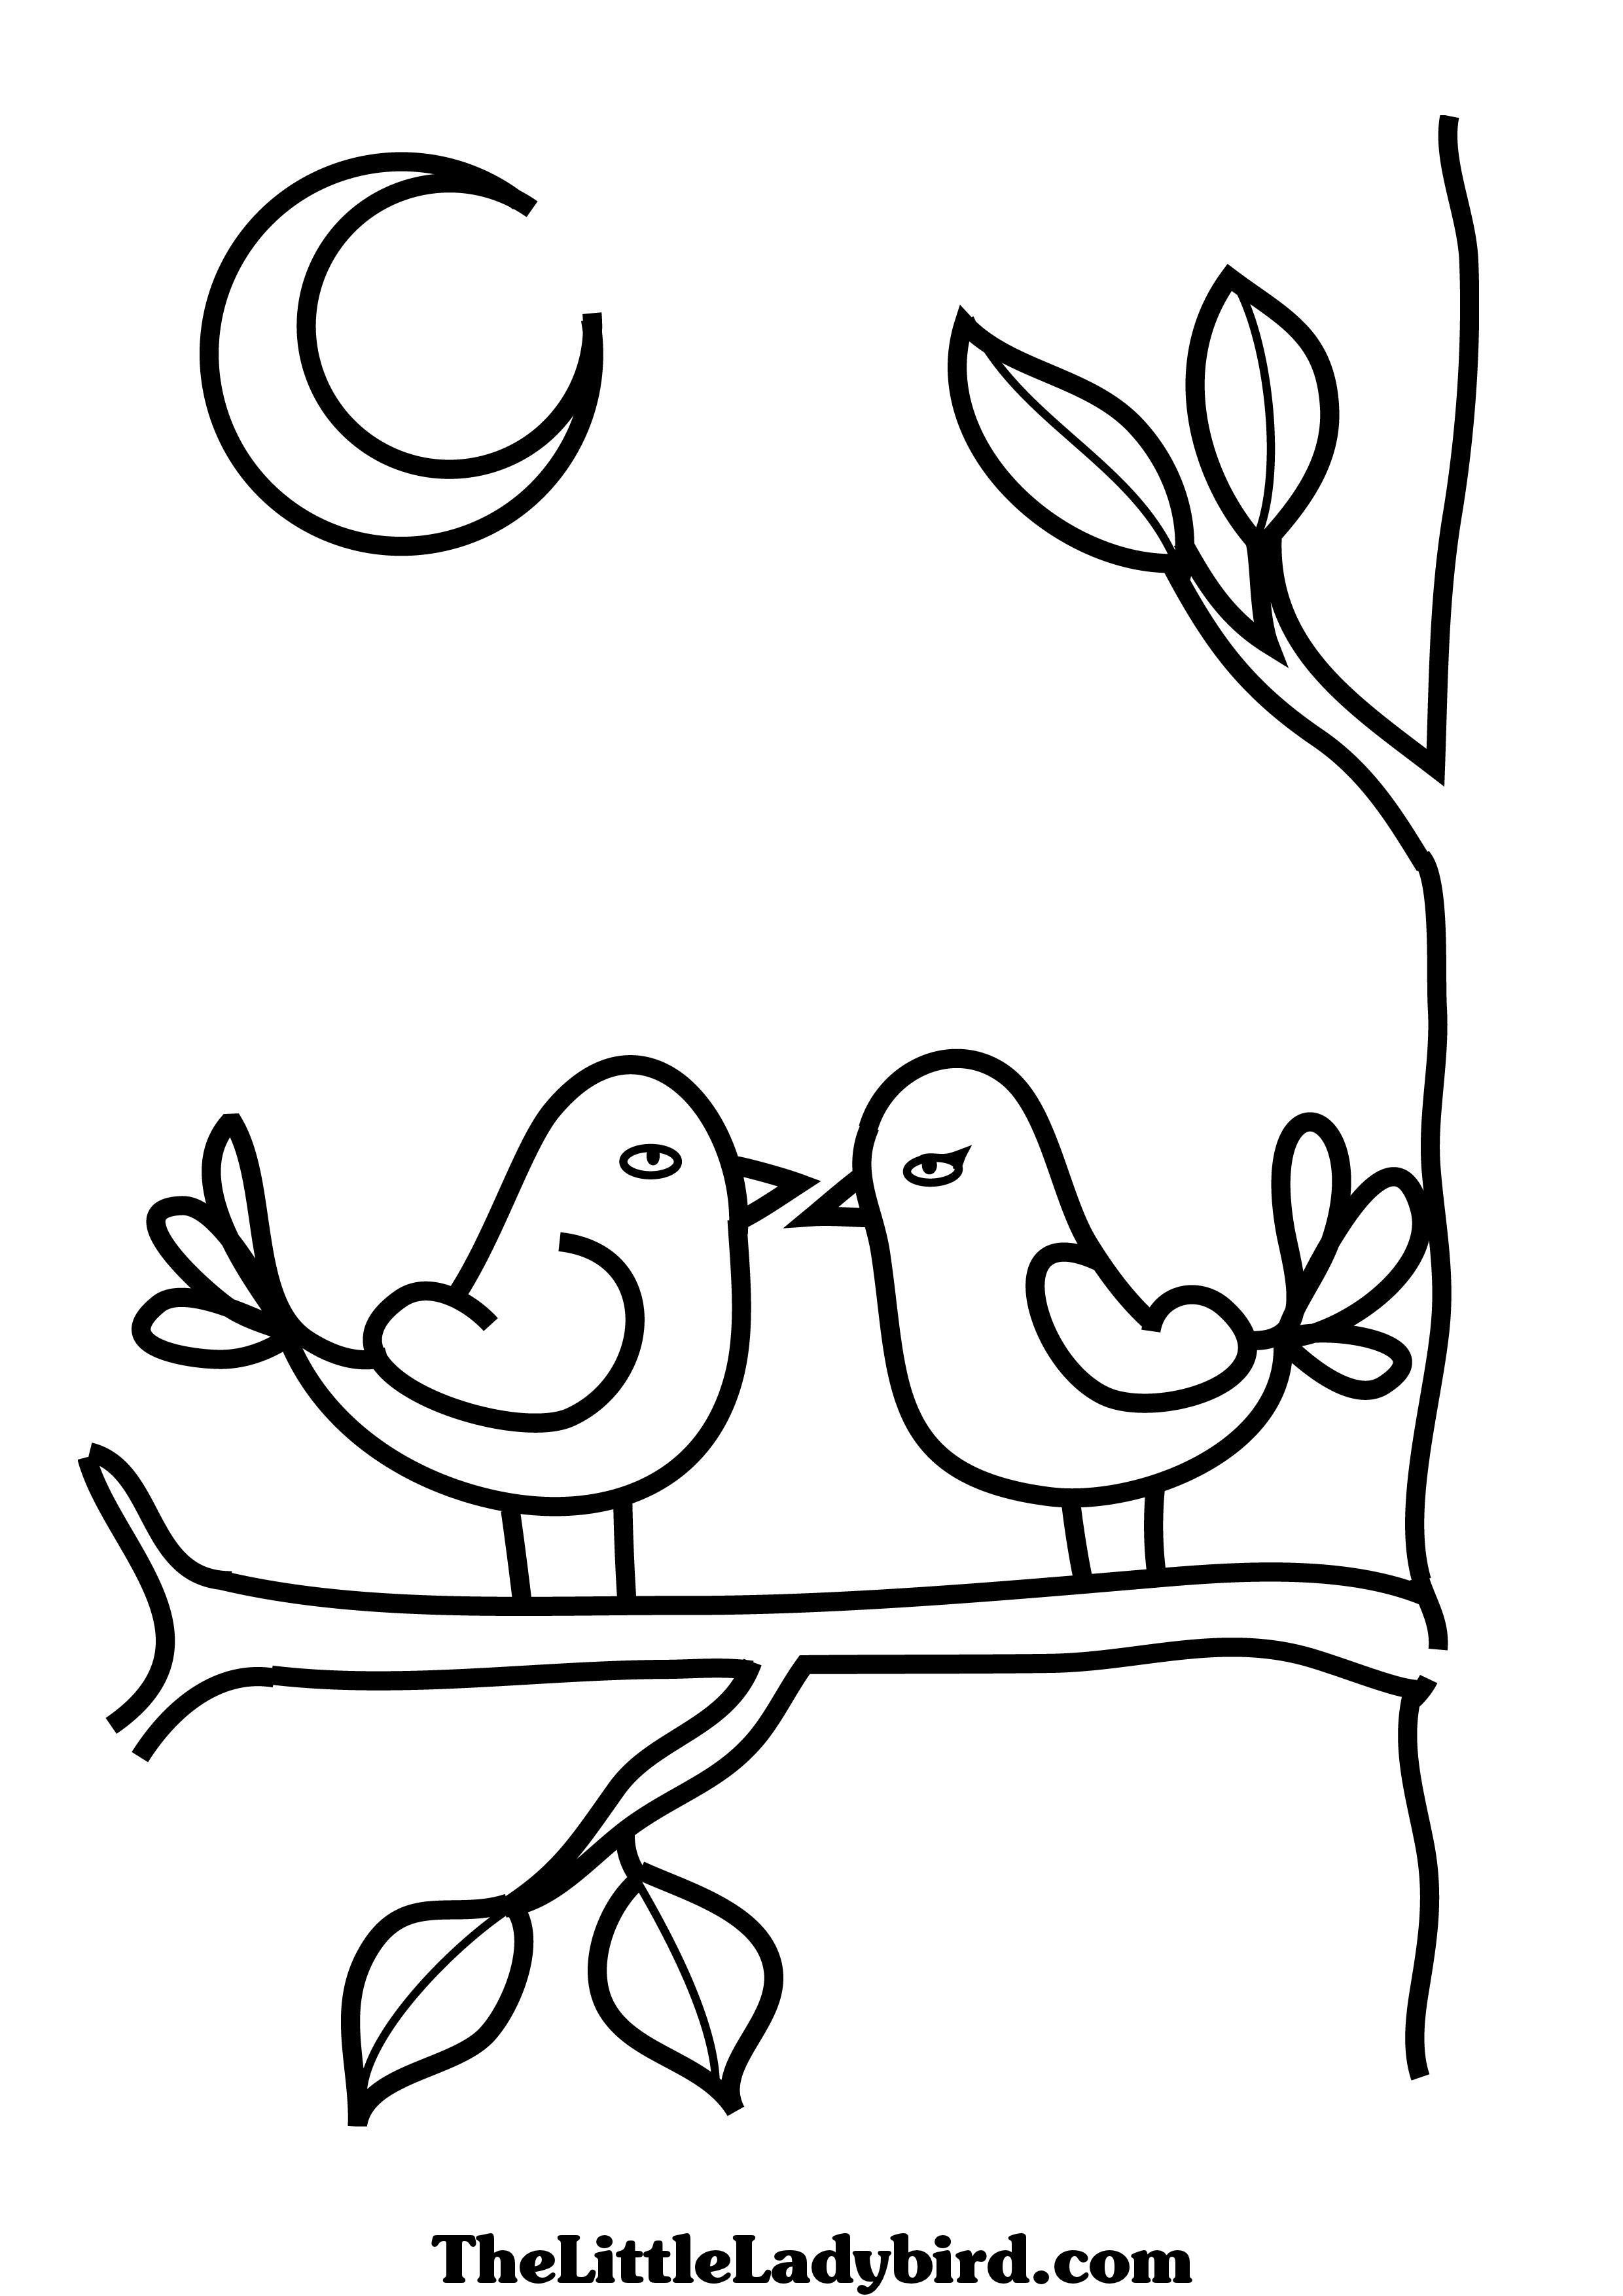 2480x3508 free love coloring pages - Love Coloring Pages 2